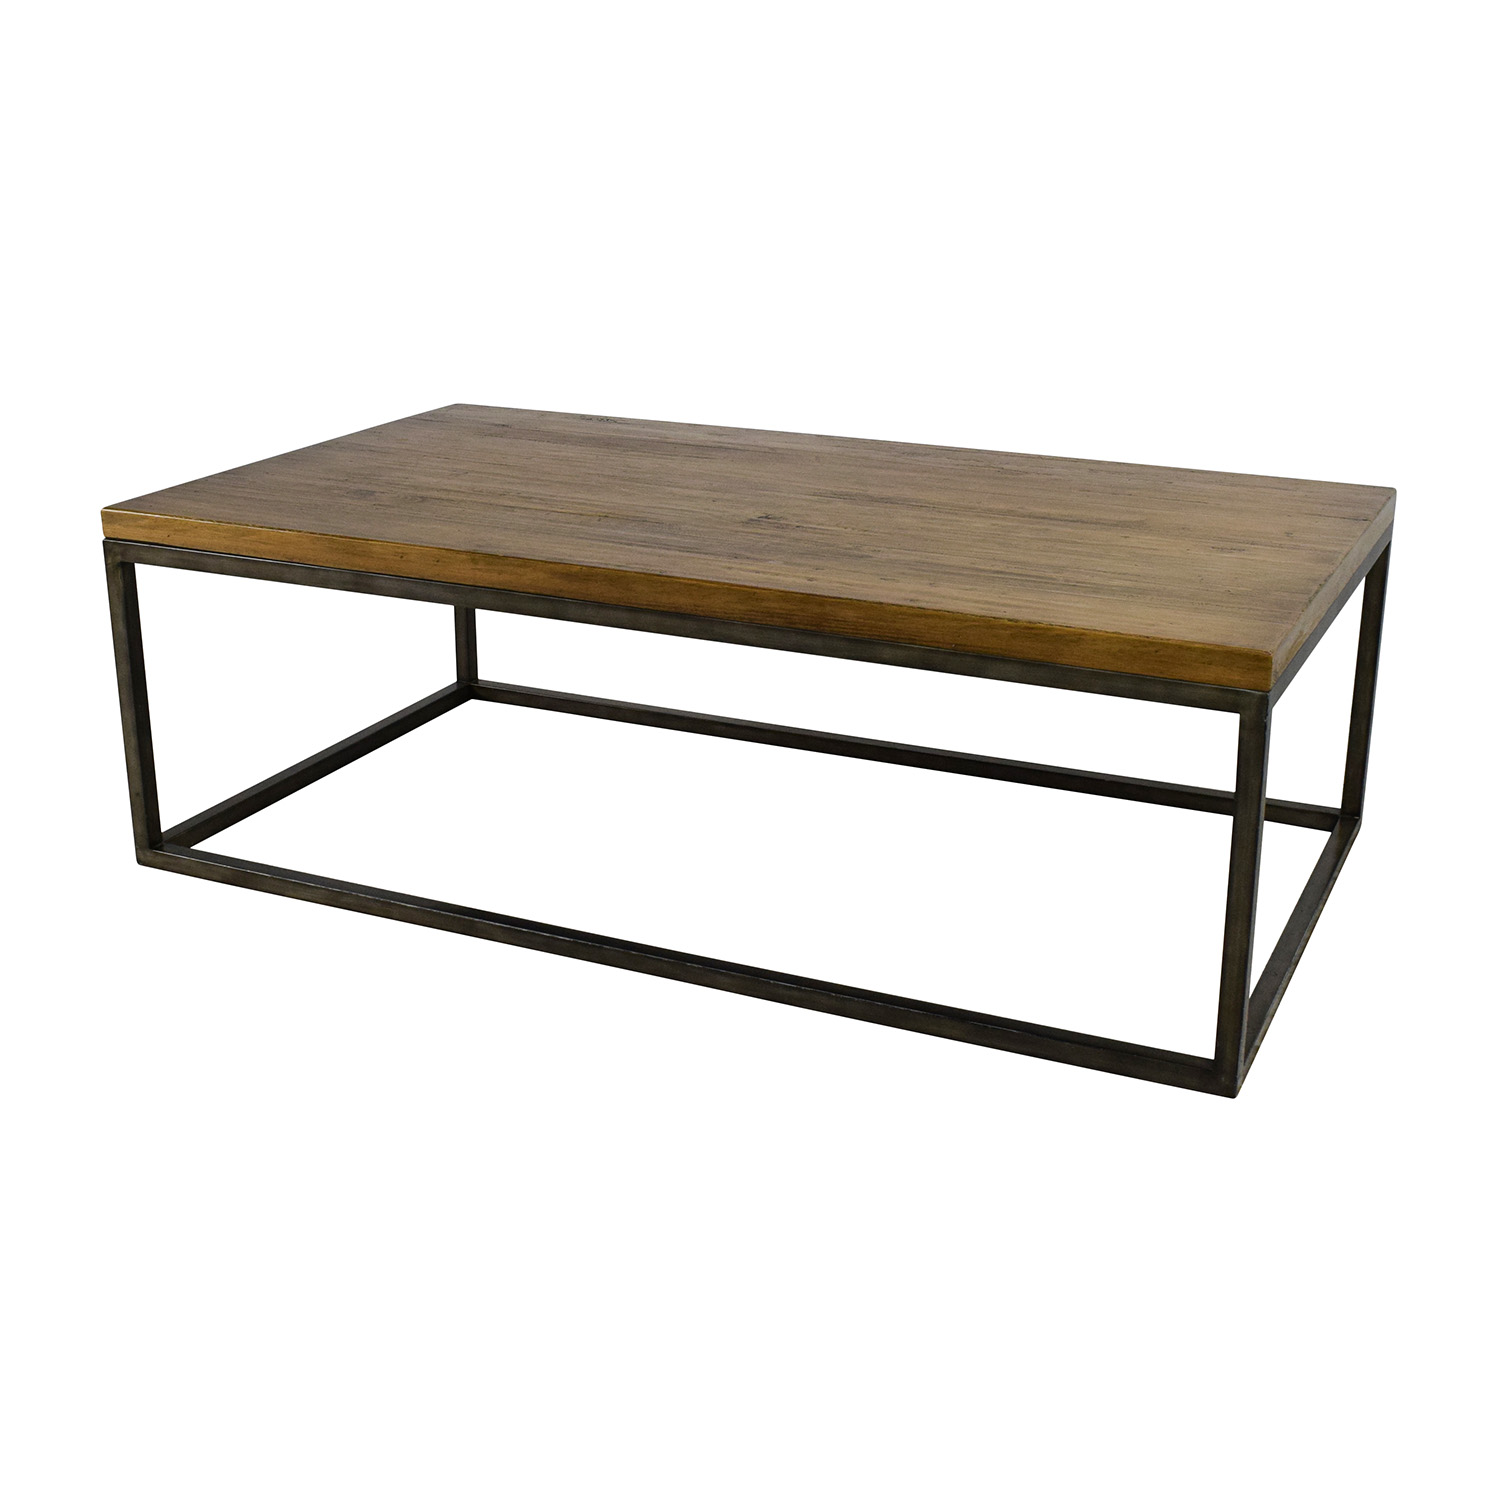 ... West Elm Box Frame Coffee Table sale ... - 51% OFF - West Elm West Elm Box Frame Coffee Table / Tables